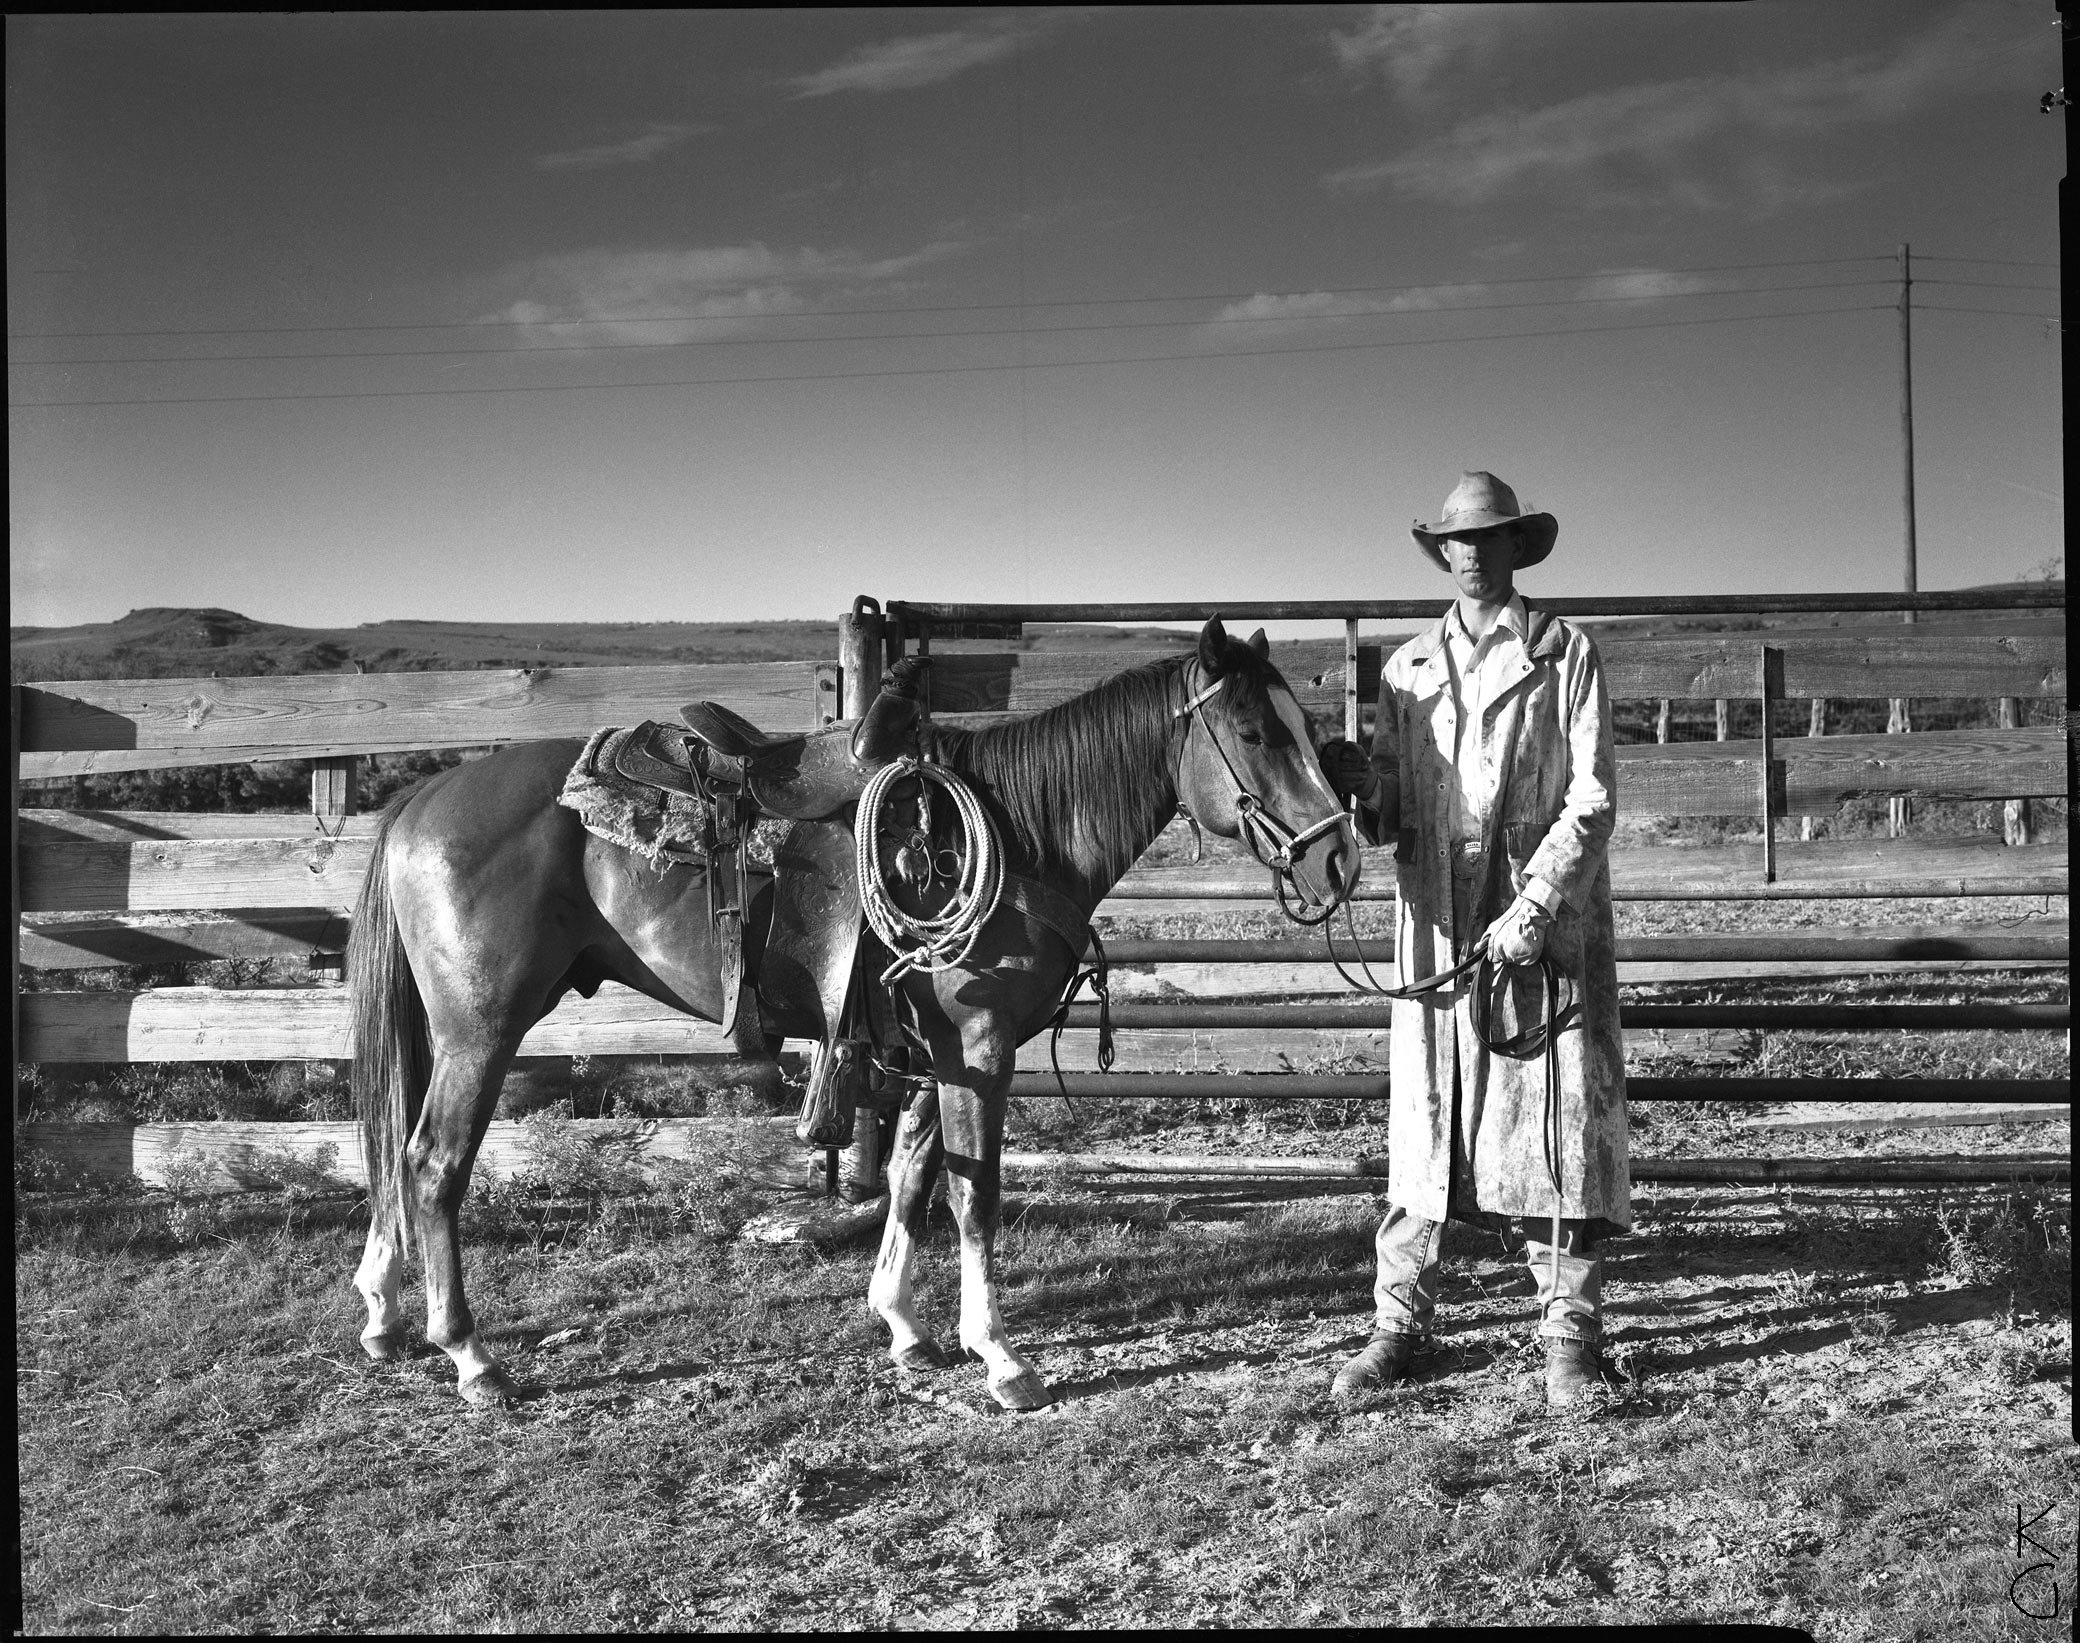 Cowboy and Horse, The Panhandle 1987